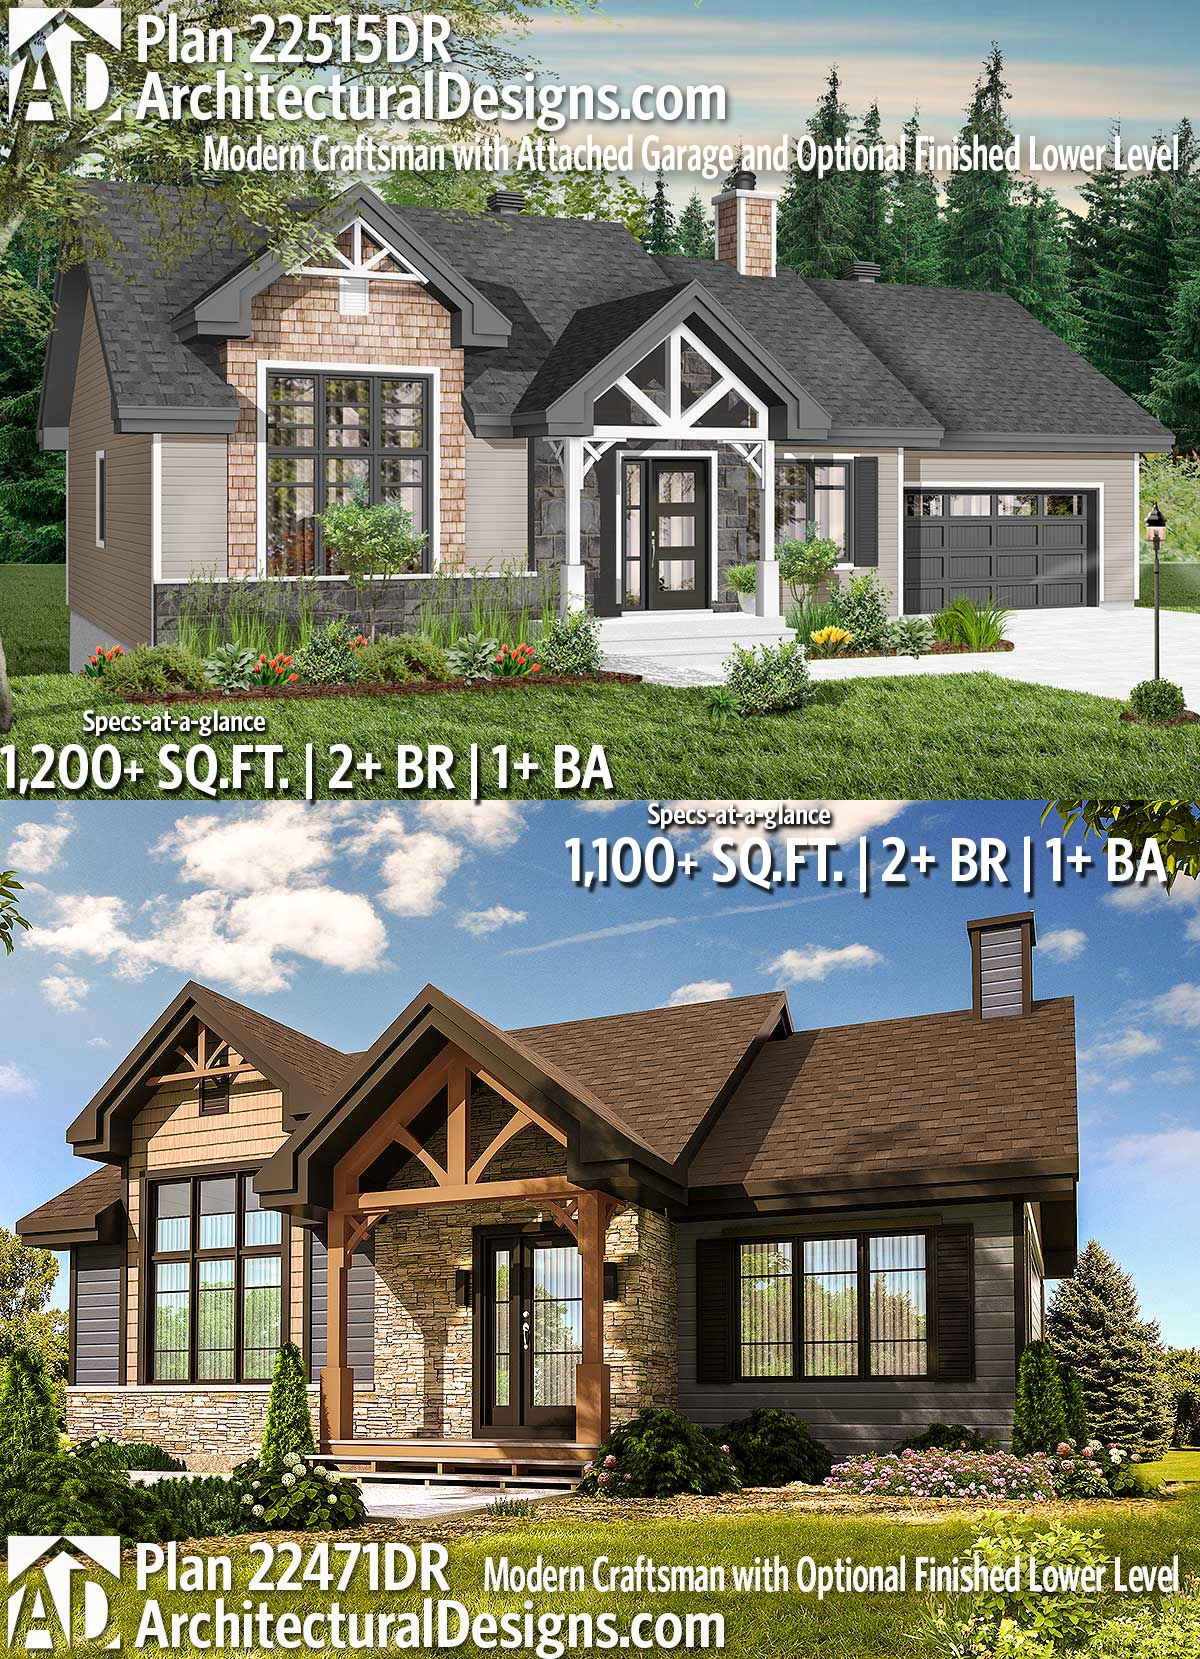 Plan 22515Dr Modern Craftsman With Attached Garage And Optional Finished